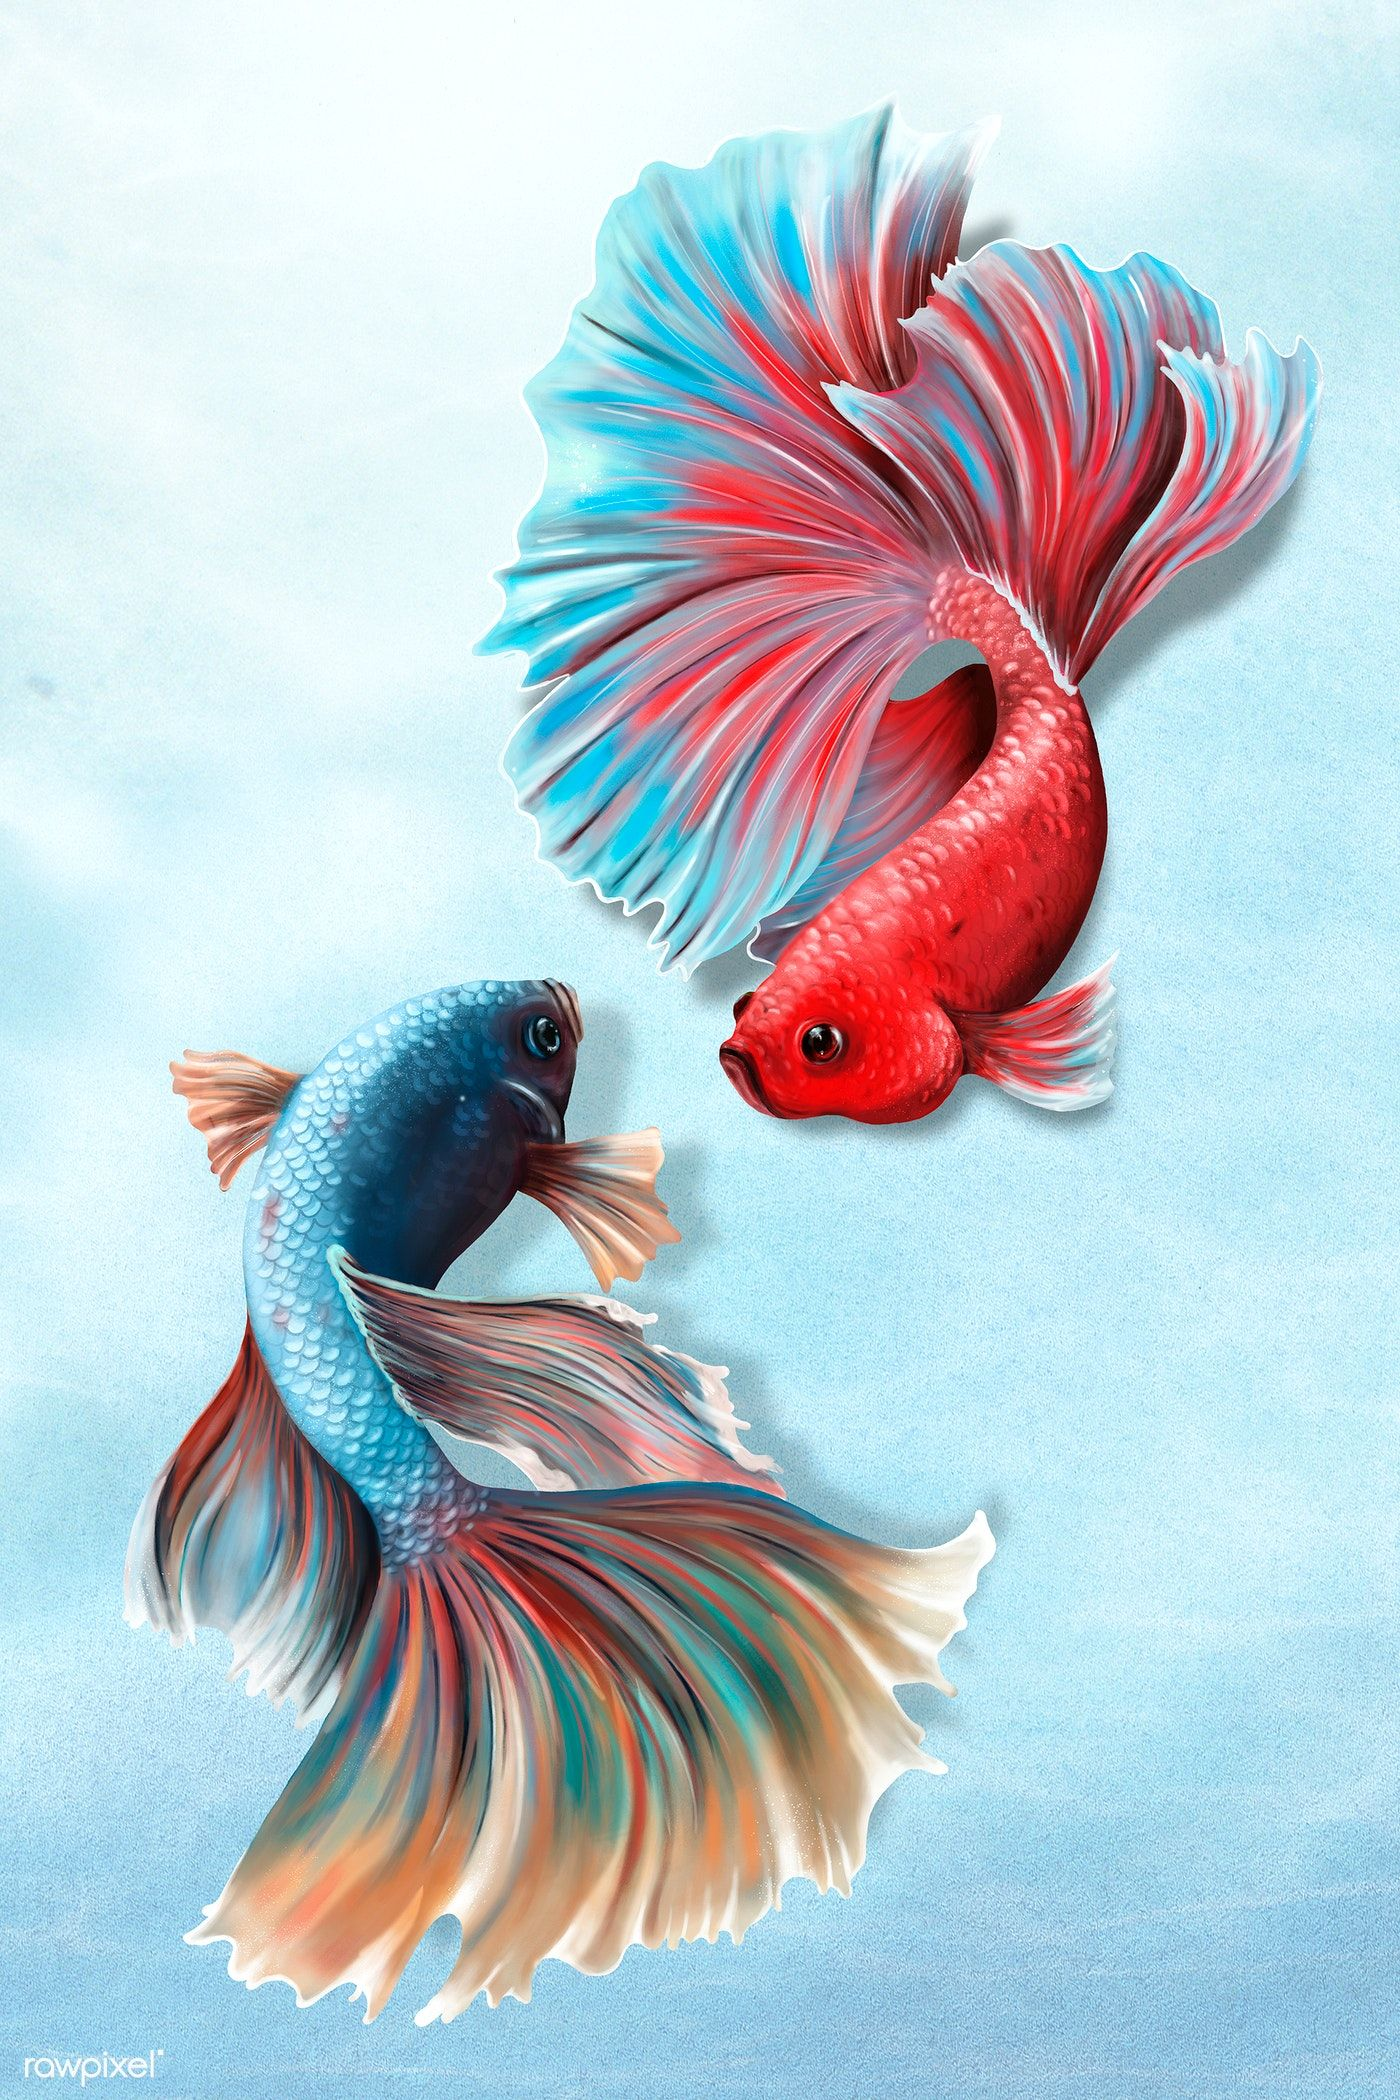 Download Premium Illustration Of Colorful Betta Fishes On A Sky Blue In 2020 Fish Drawings Betta Fish Image Of Fish